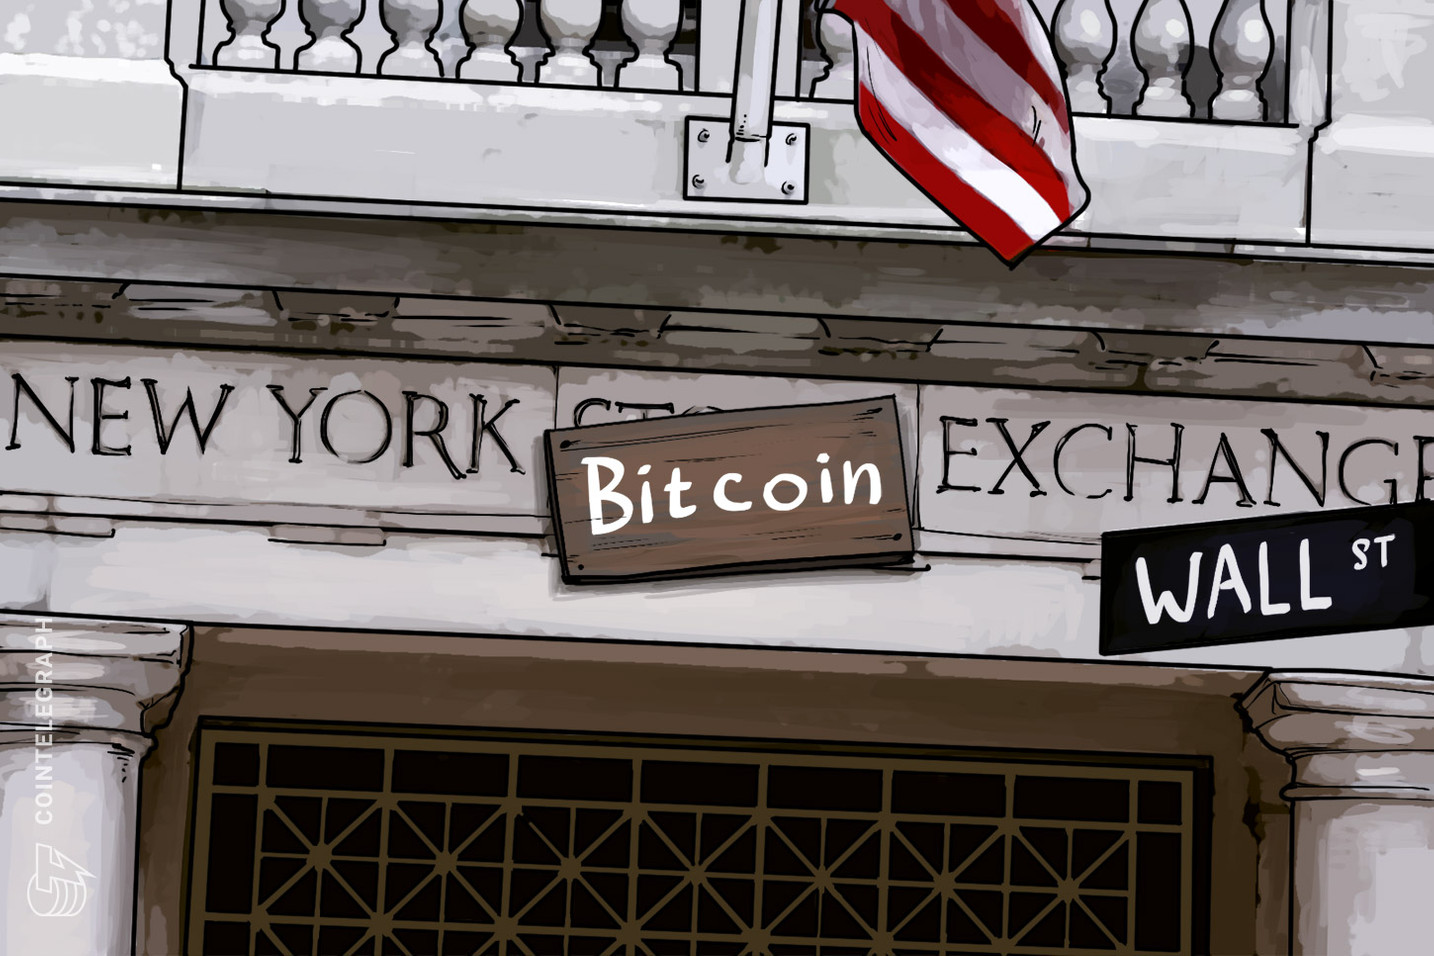 Lack of ETNs Keeps Wall Street Away From Bitcoin, Says CBOE Analyst Ed Tilly